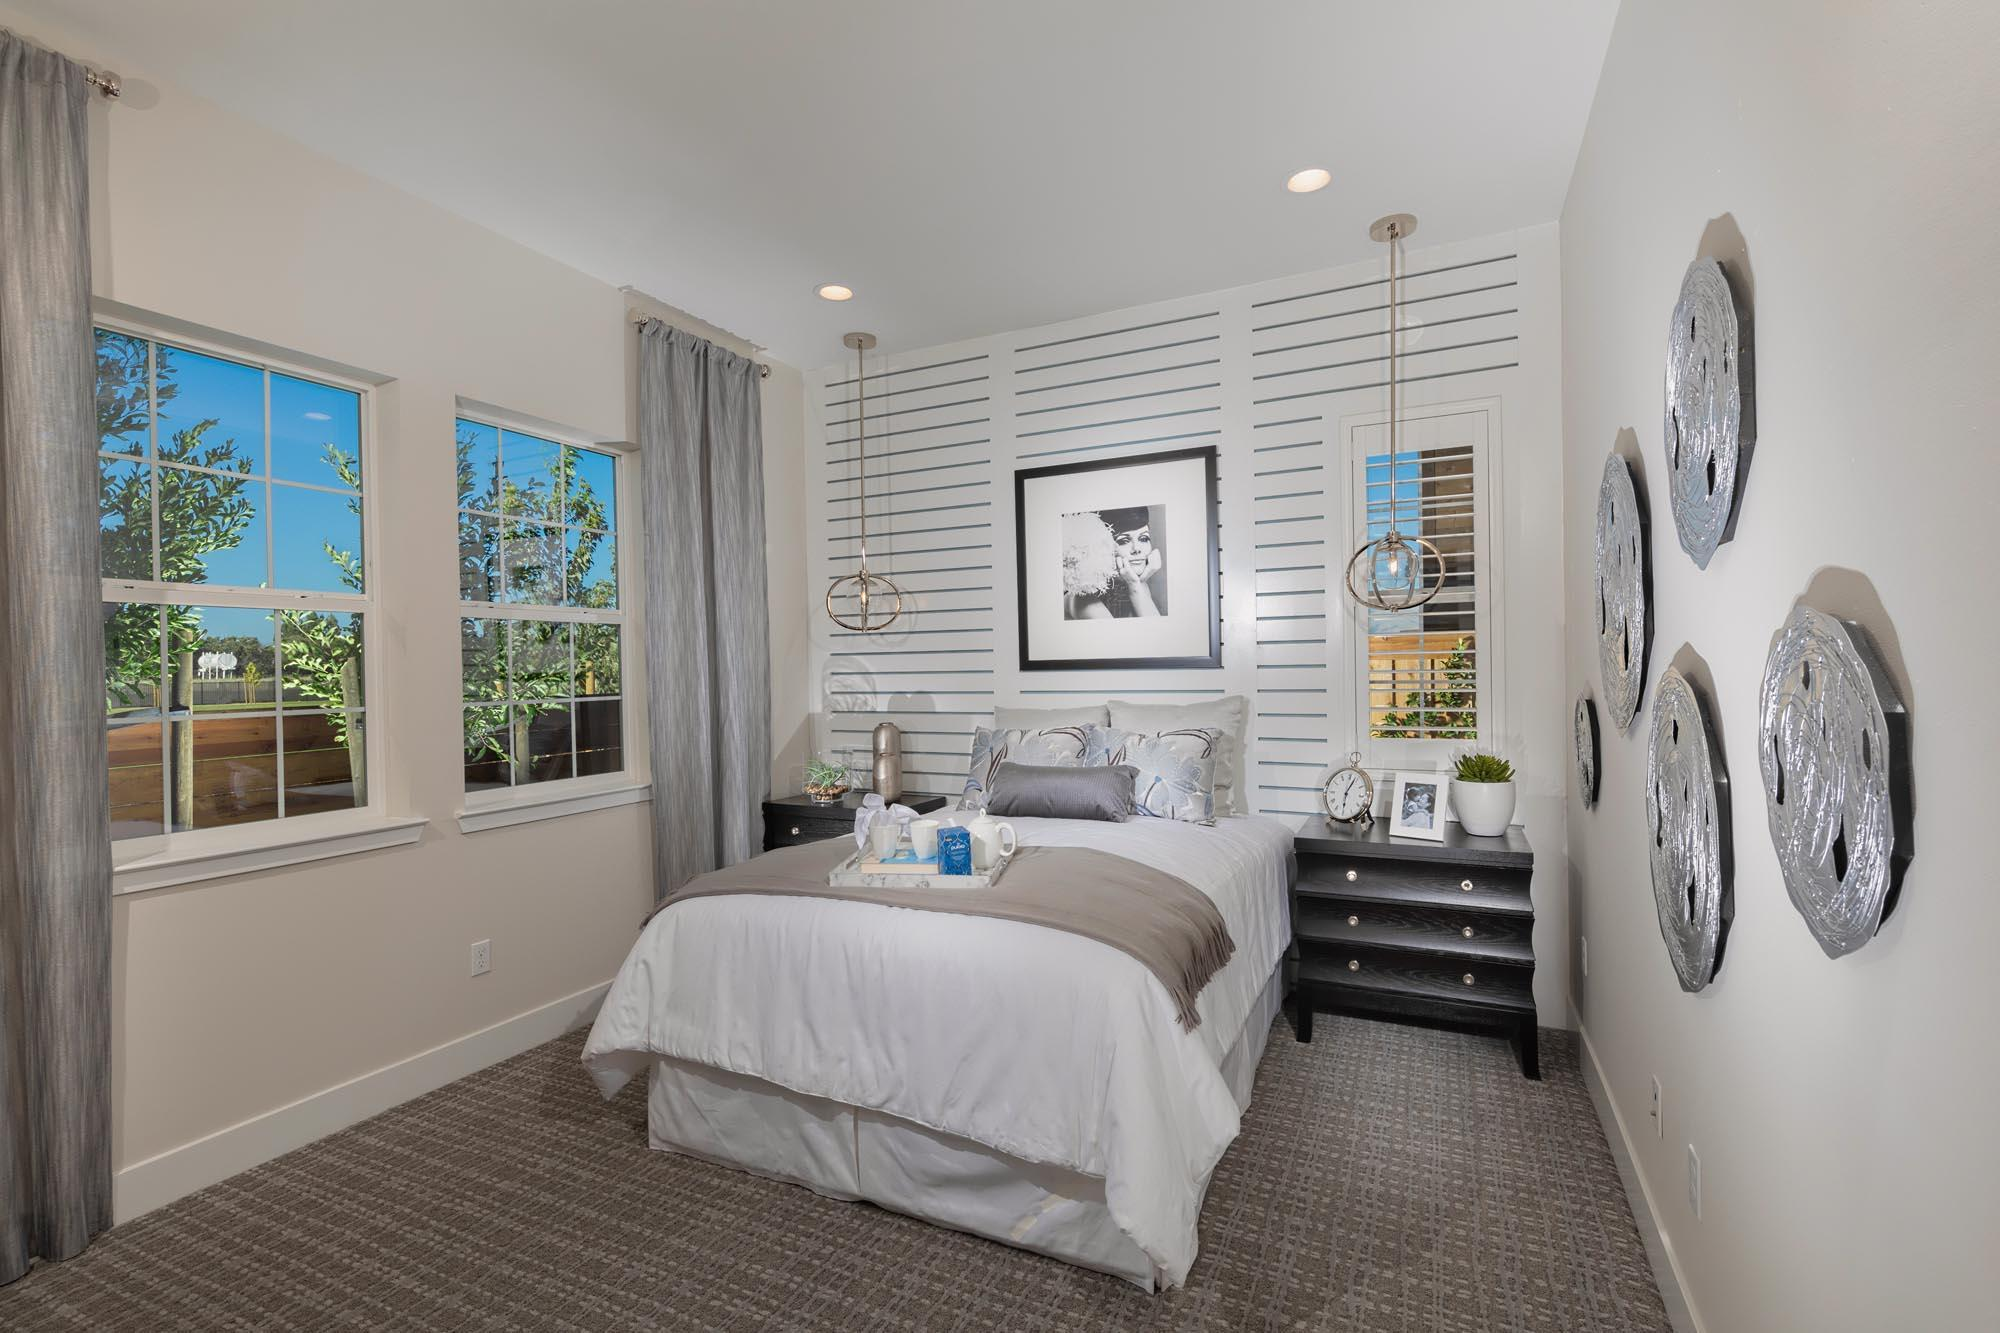 Bedroom featured in the Skylark Plan Three By Landsea Homes in Oakland-Alameda, CA